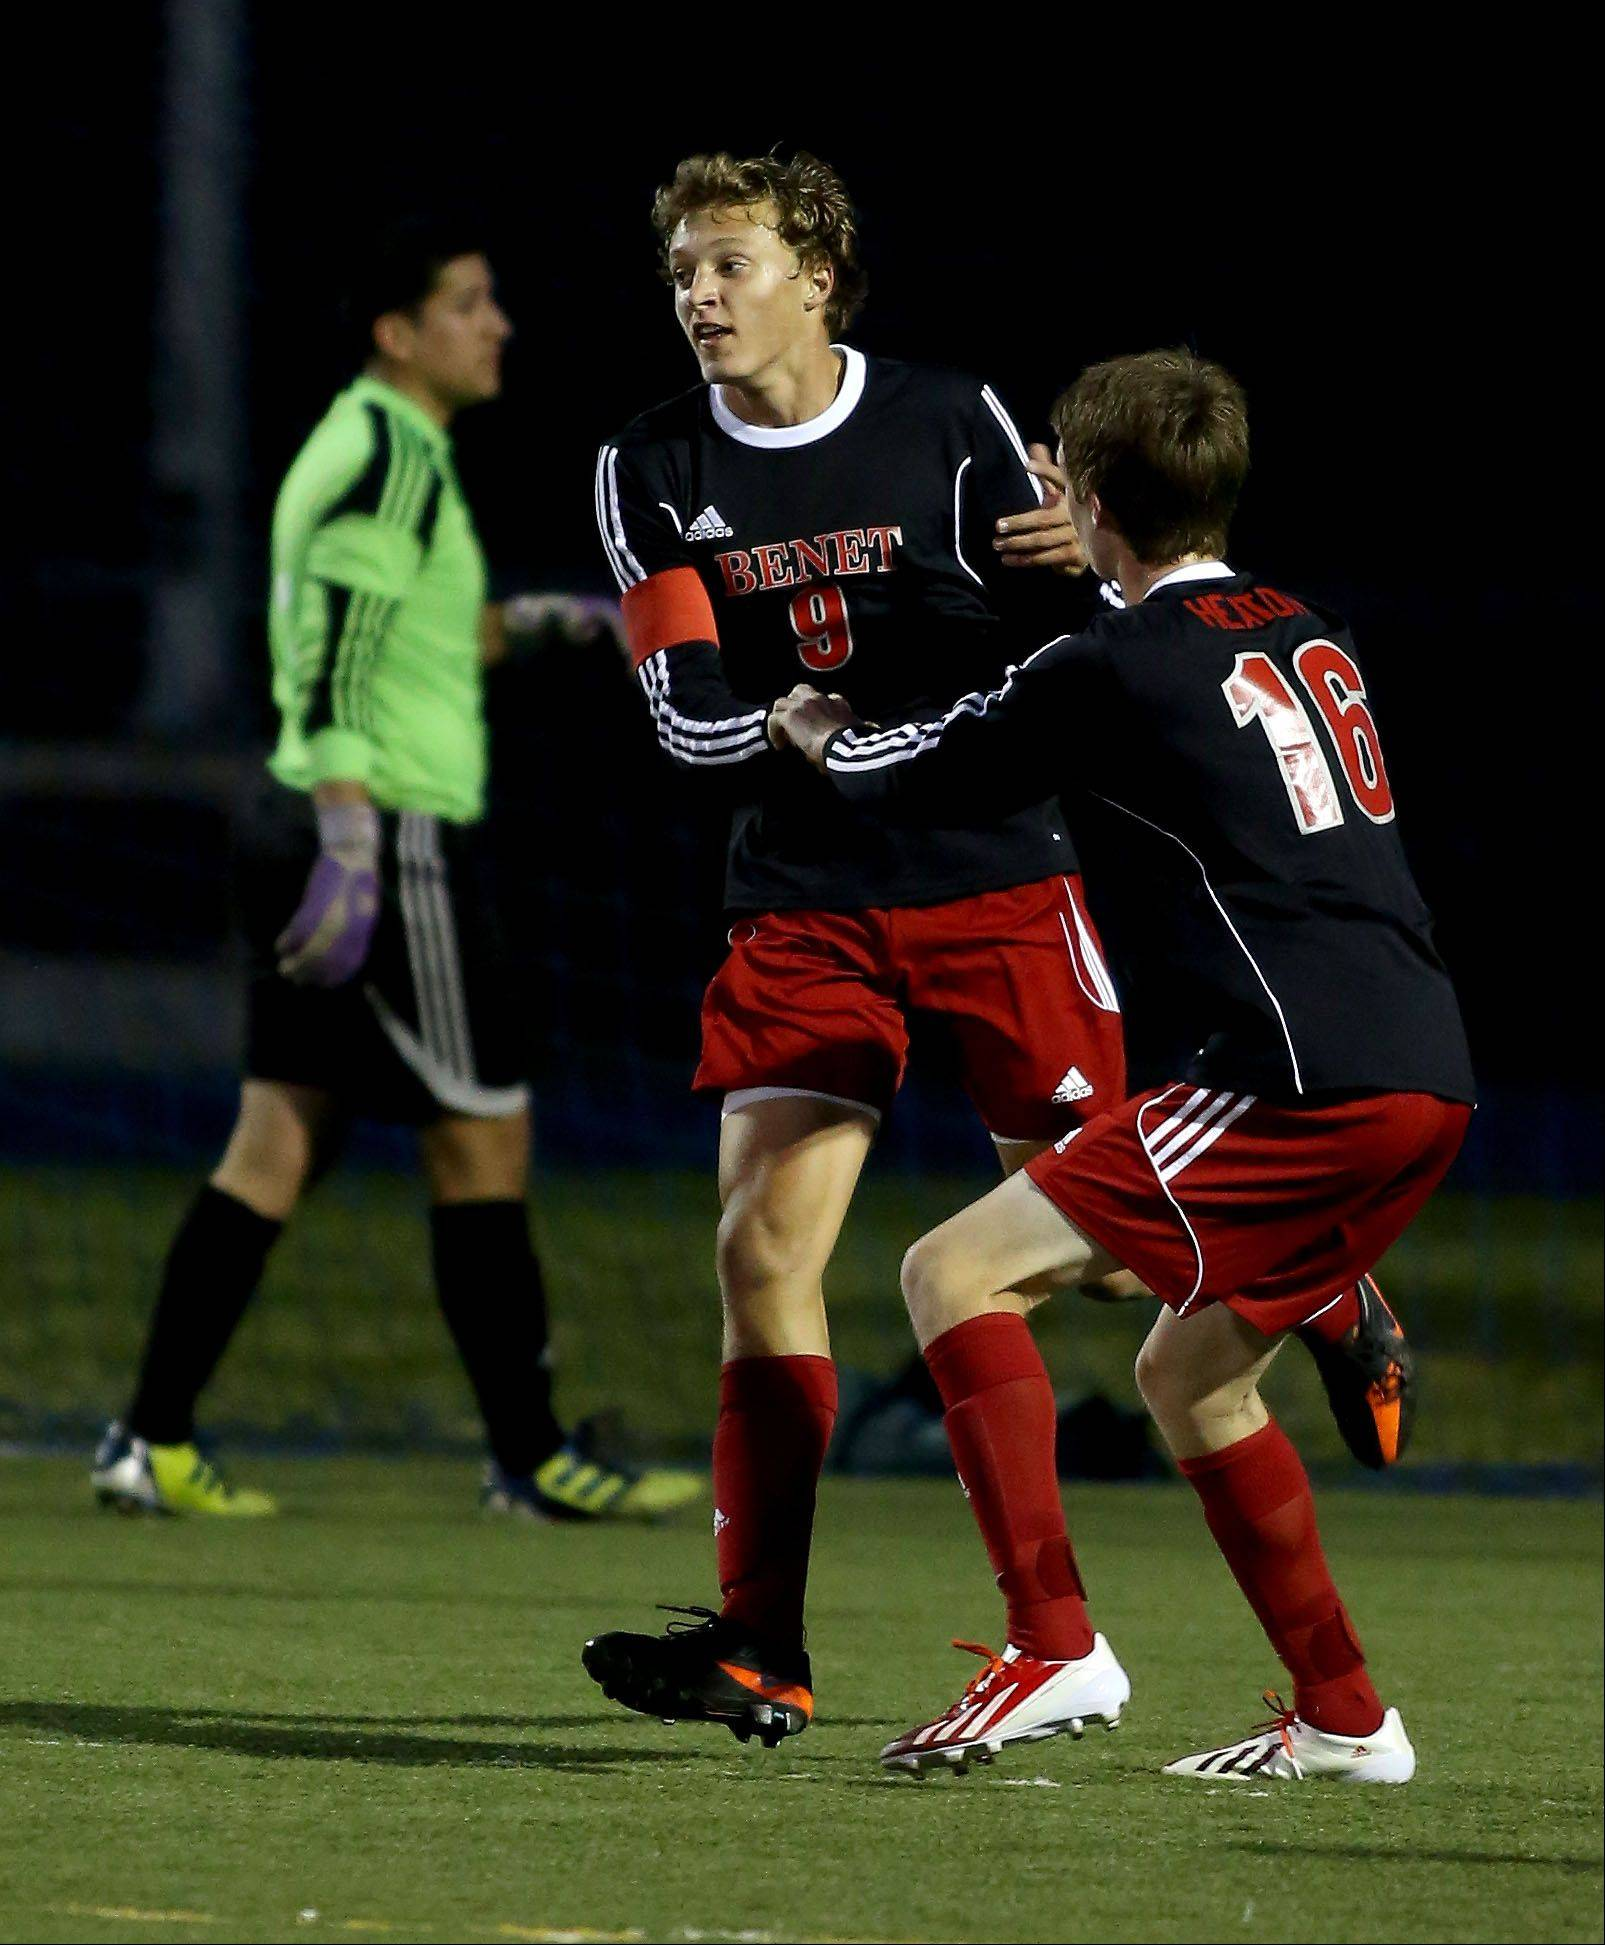 Michael Rindler of Benet Academy, left, is congratulated by teammate Andrew Heaton, after he made a second goal in the first half against West Chicago in boys soccer action on Monday.